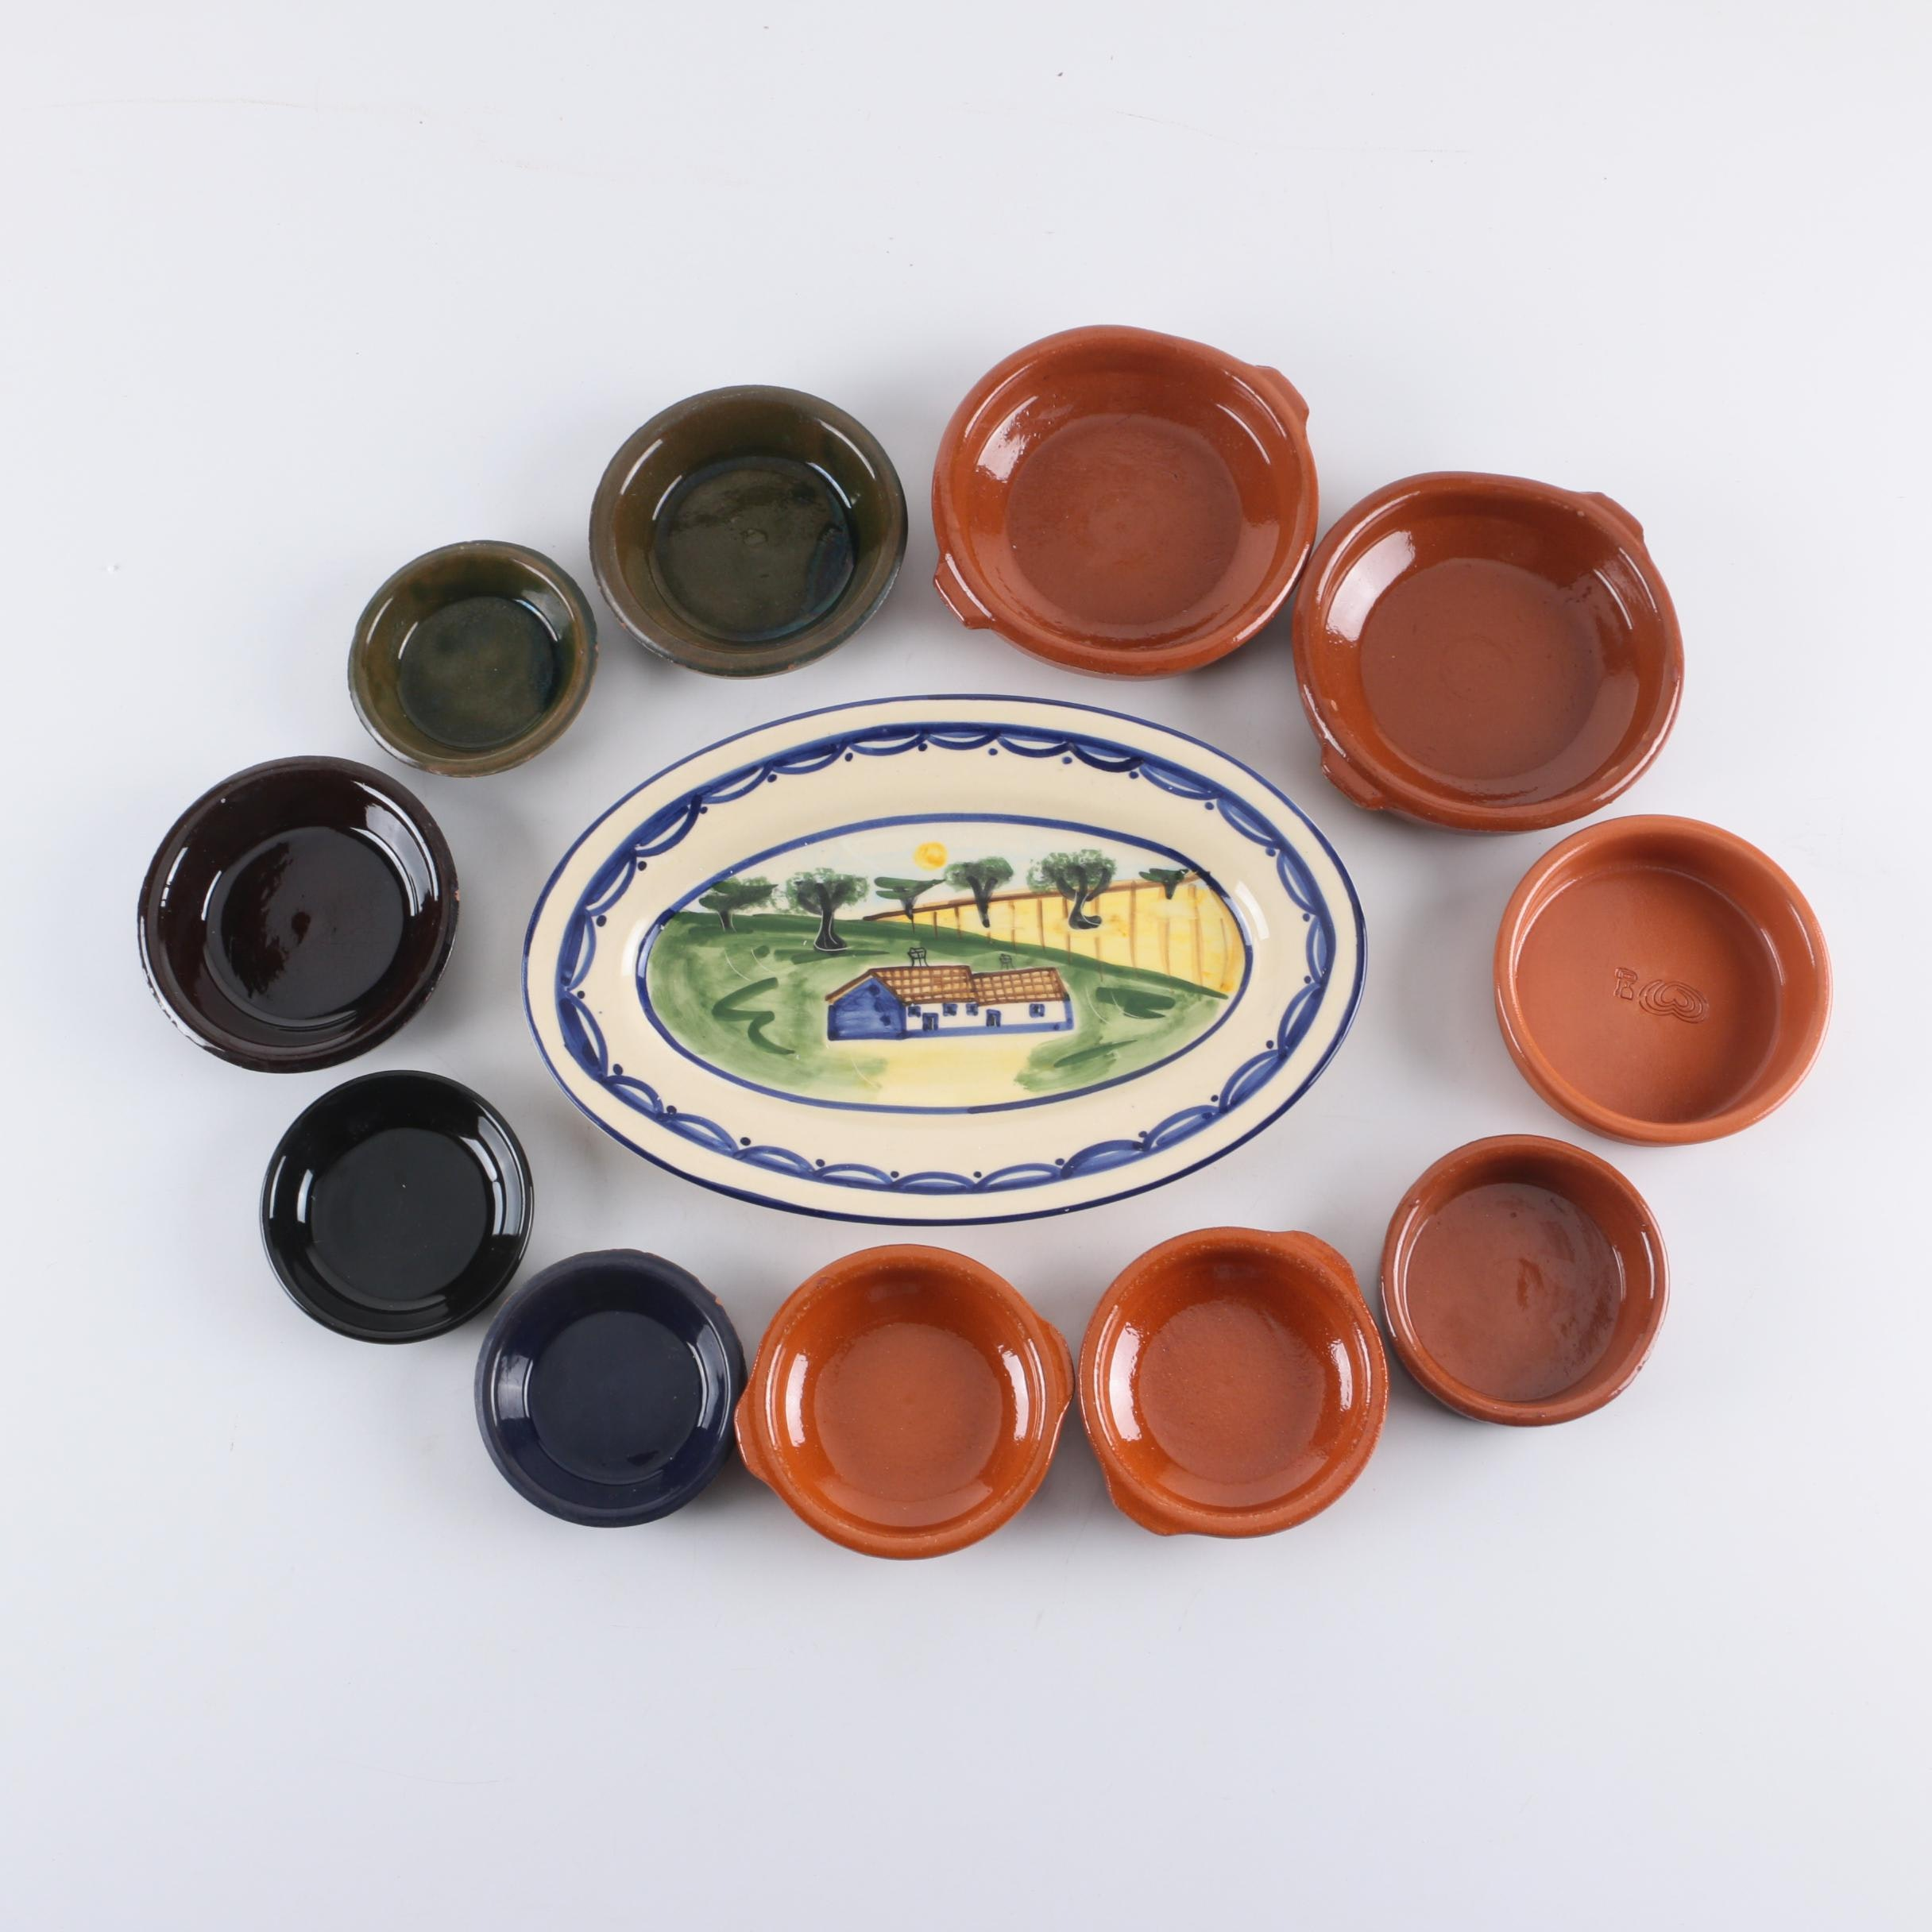 F. Macedo Portuguese Serving Platter with Earthenware Cazuela Dishes